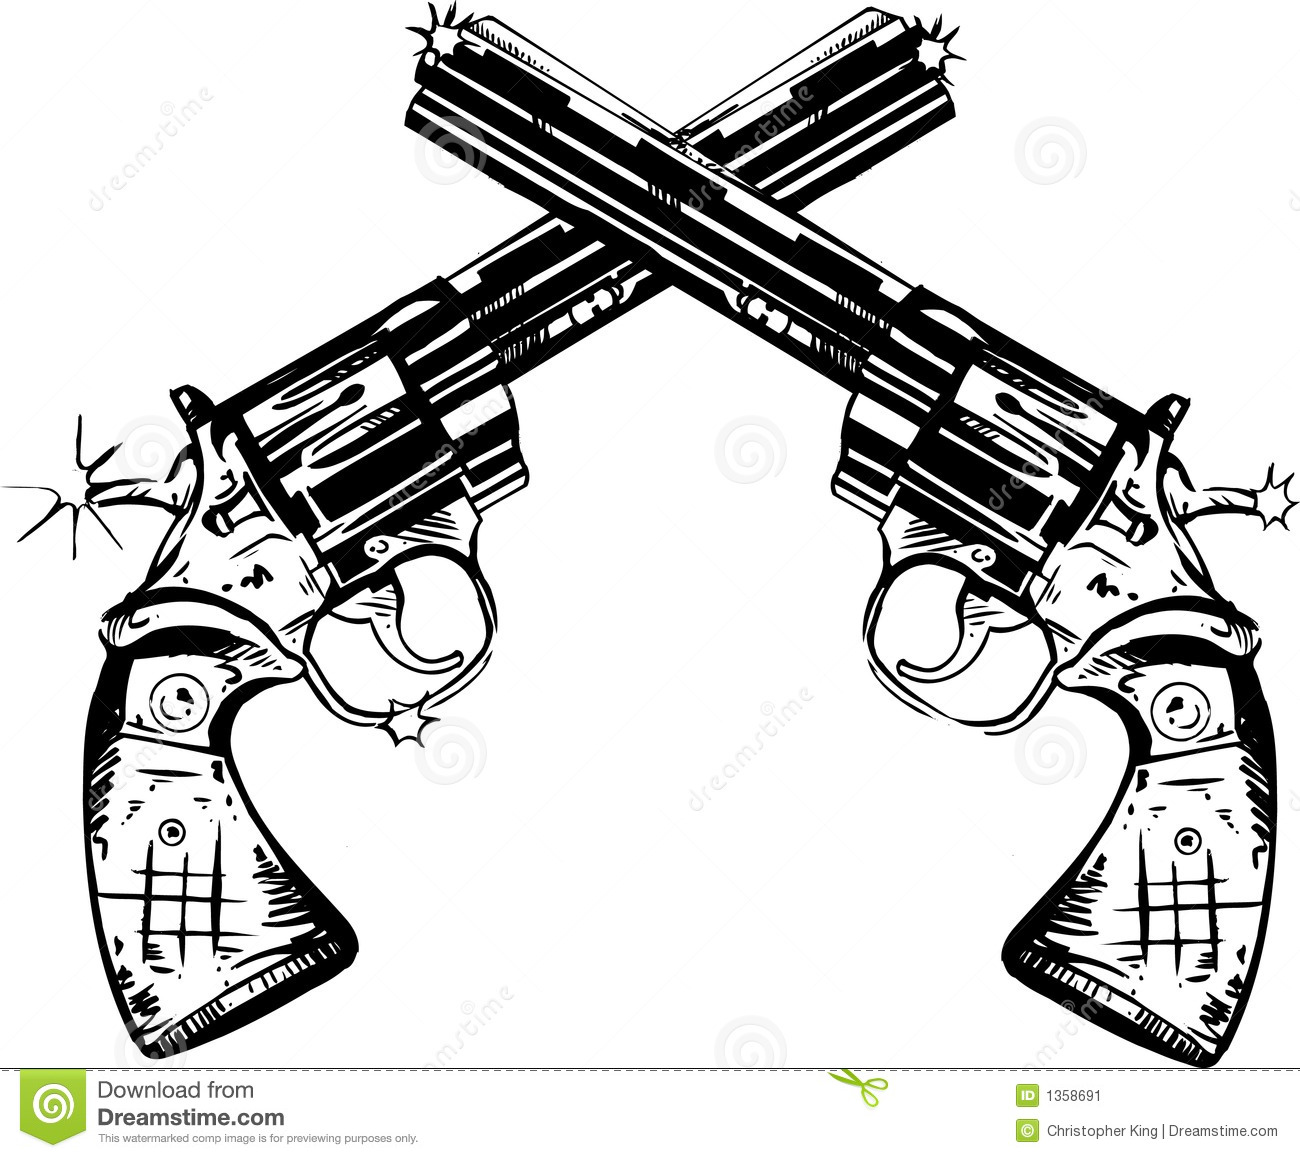 Crossed pistols clipart 3 » Clipart Station.